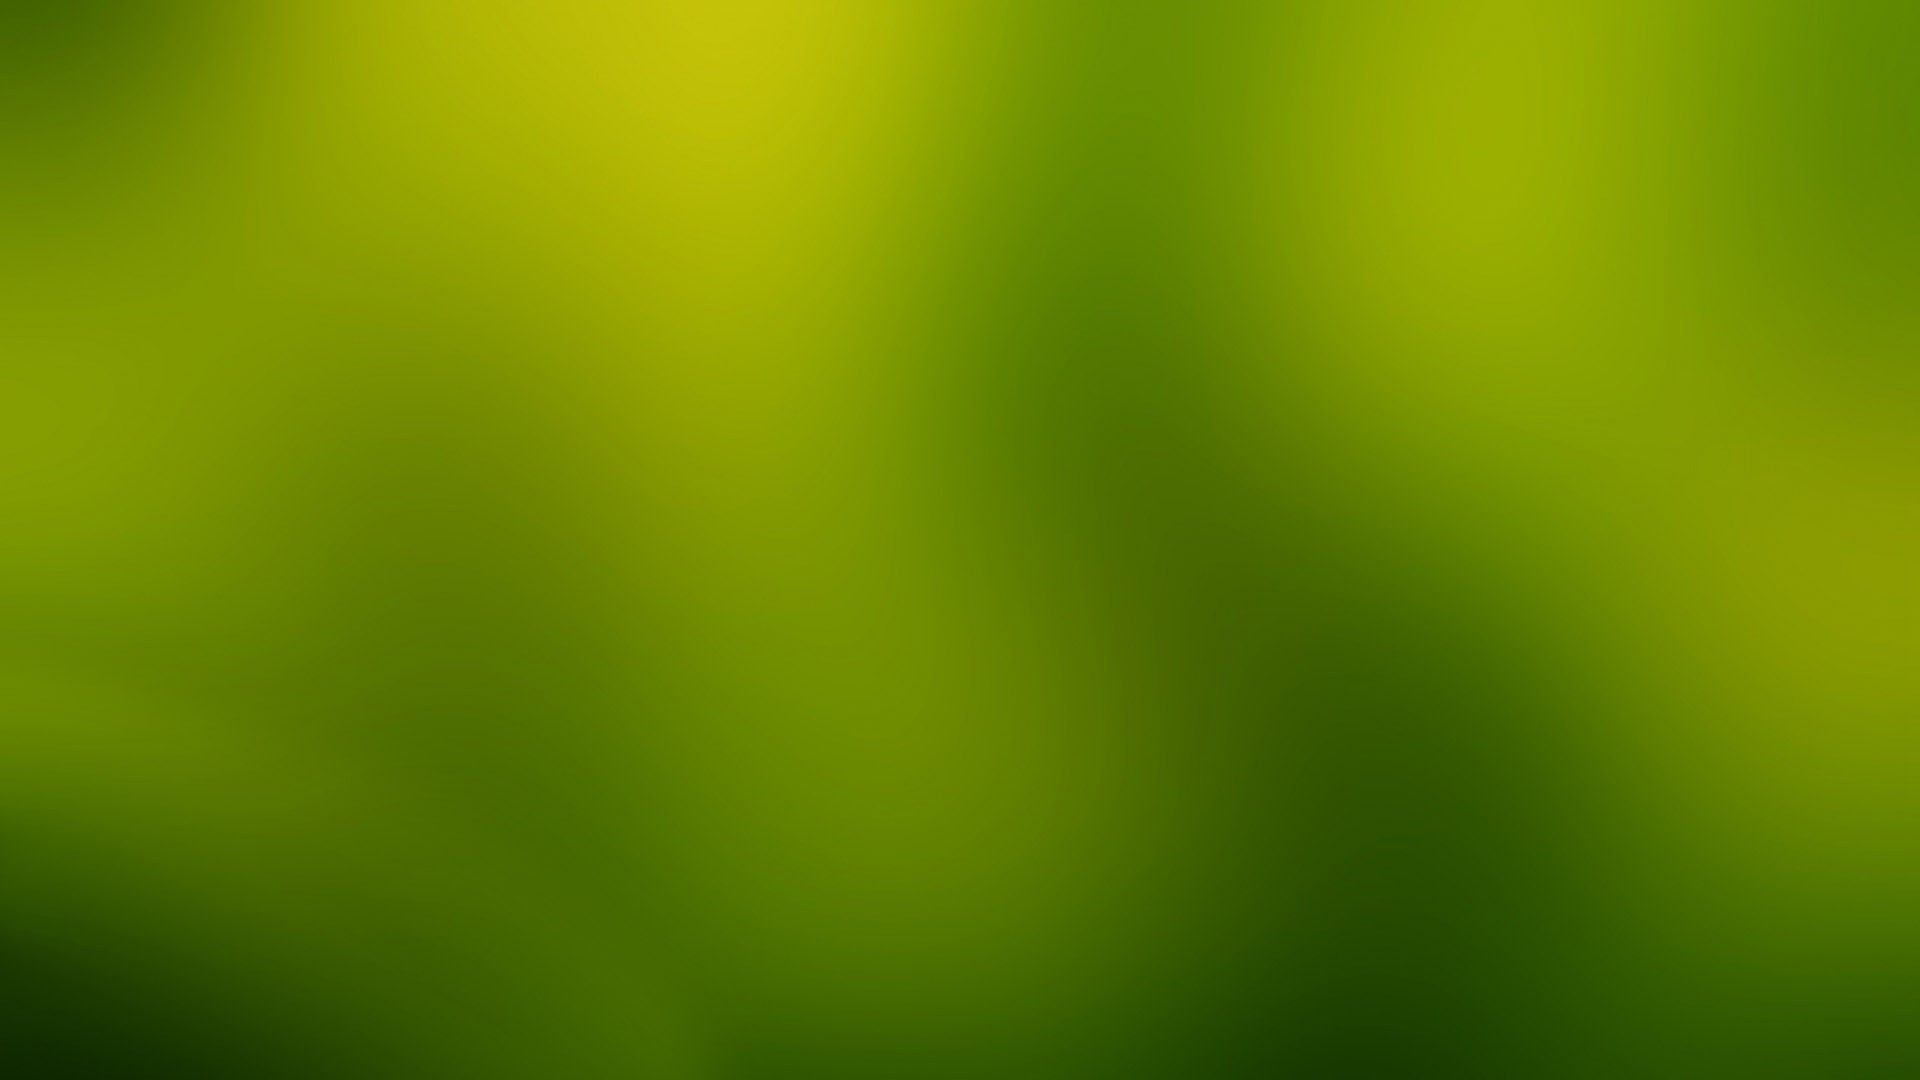 Green Blur Wallpaper